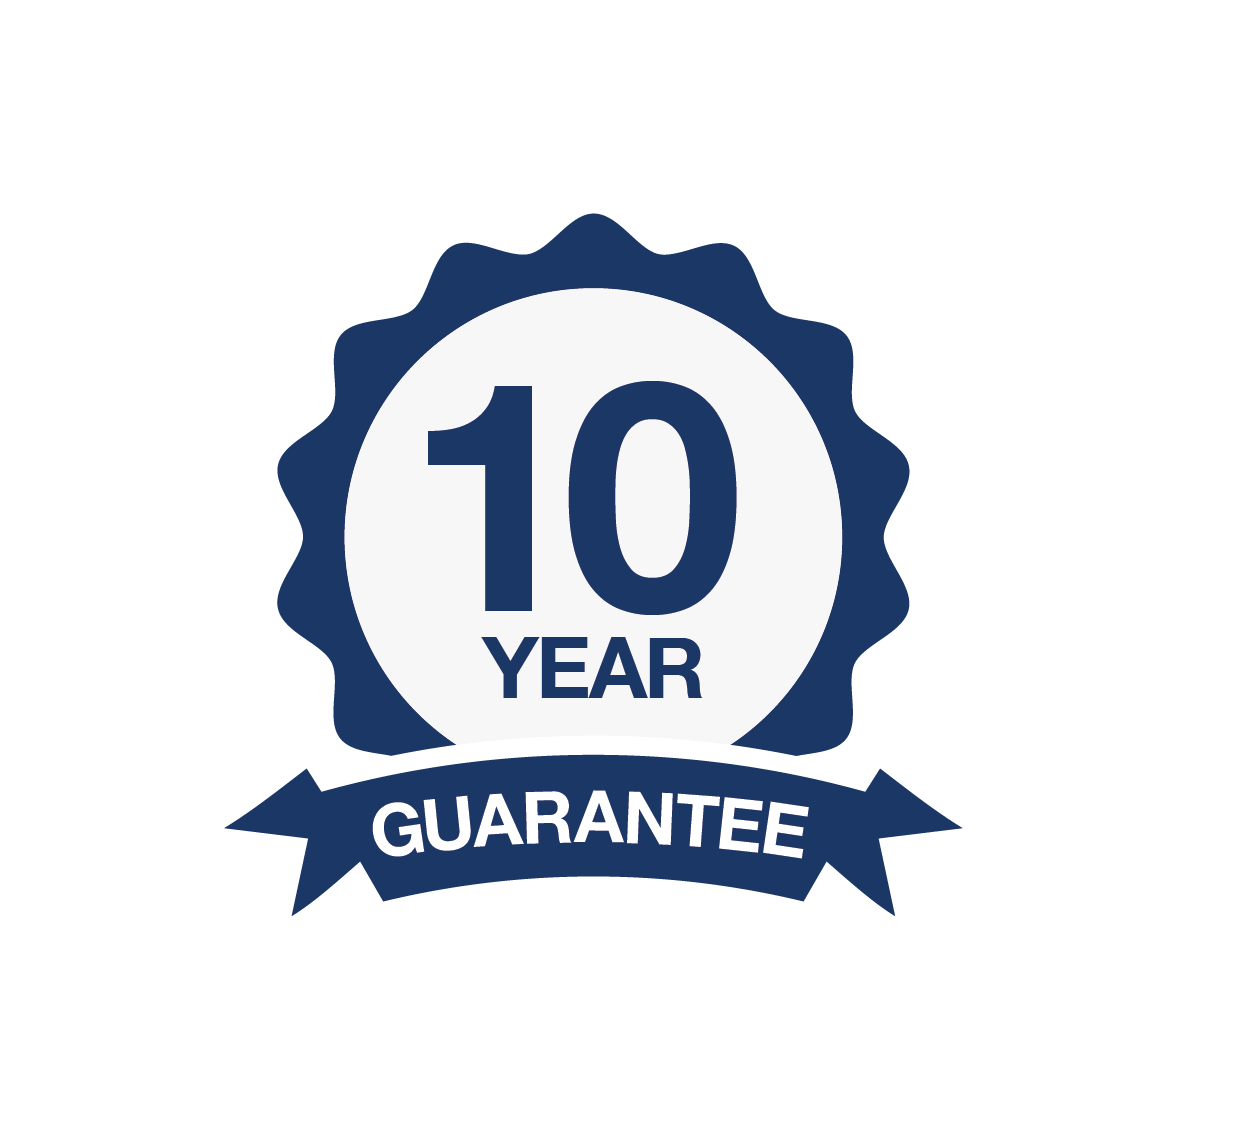 10 years guarantee logo